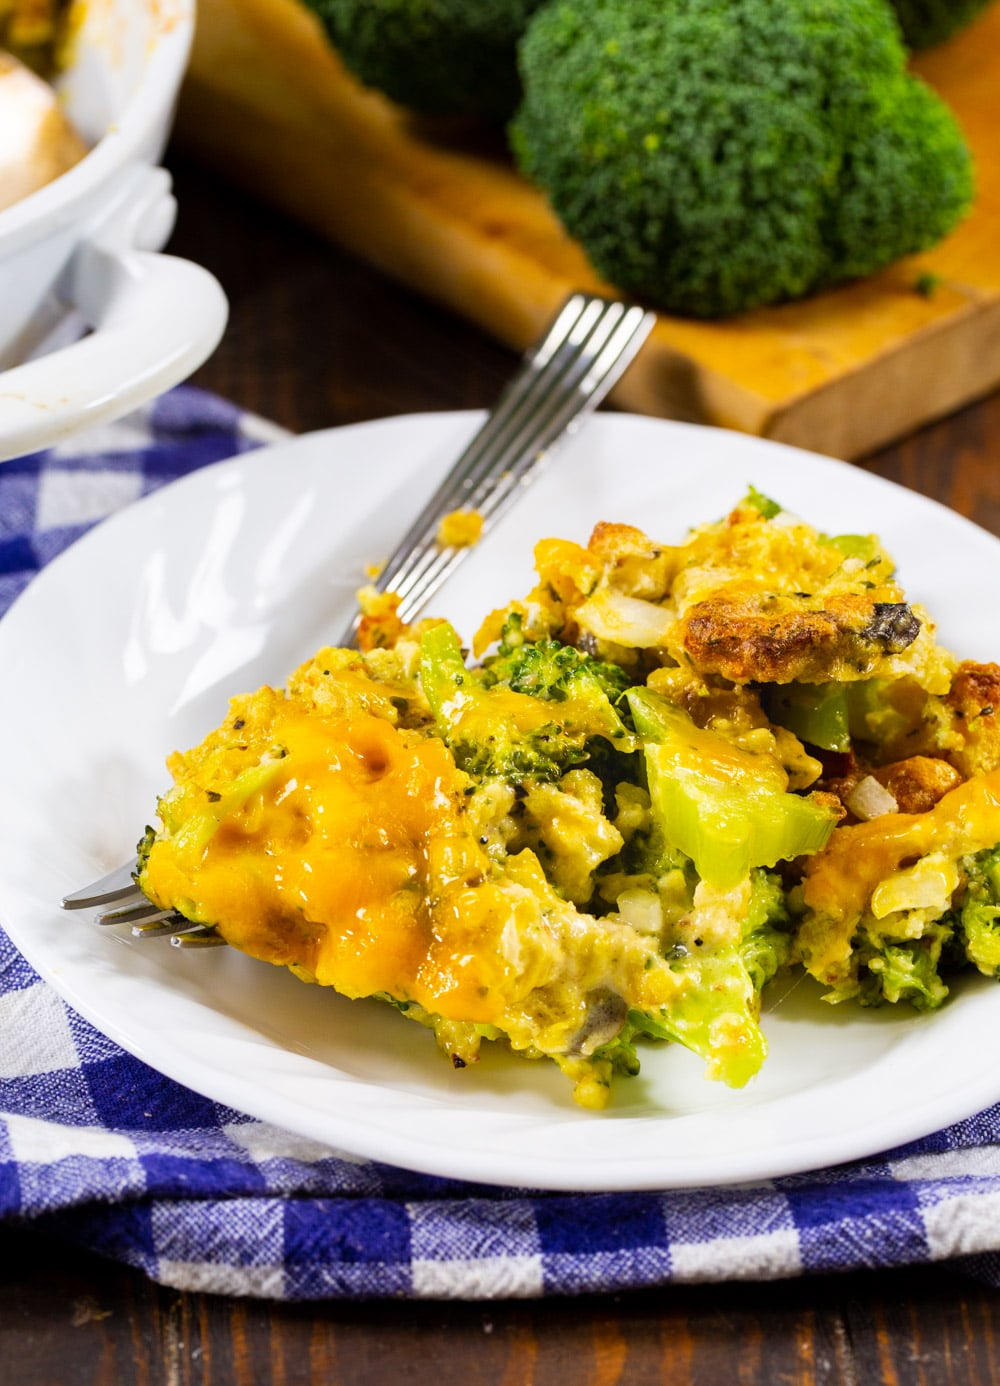 Serving of Broccoli Casserole on a plate.